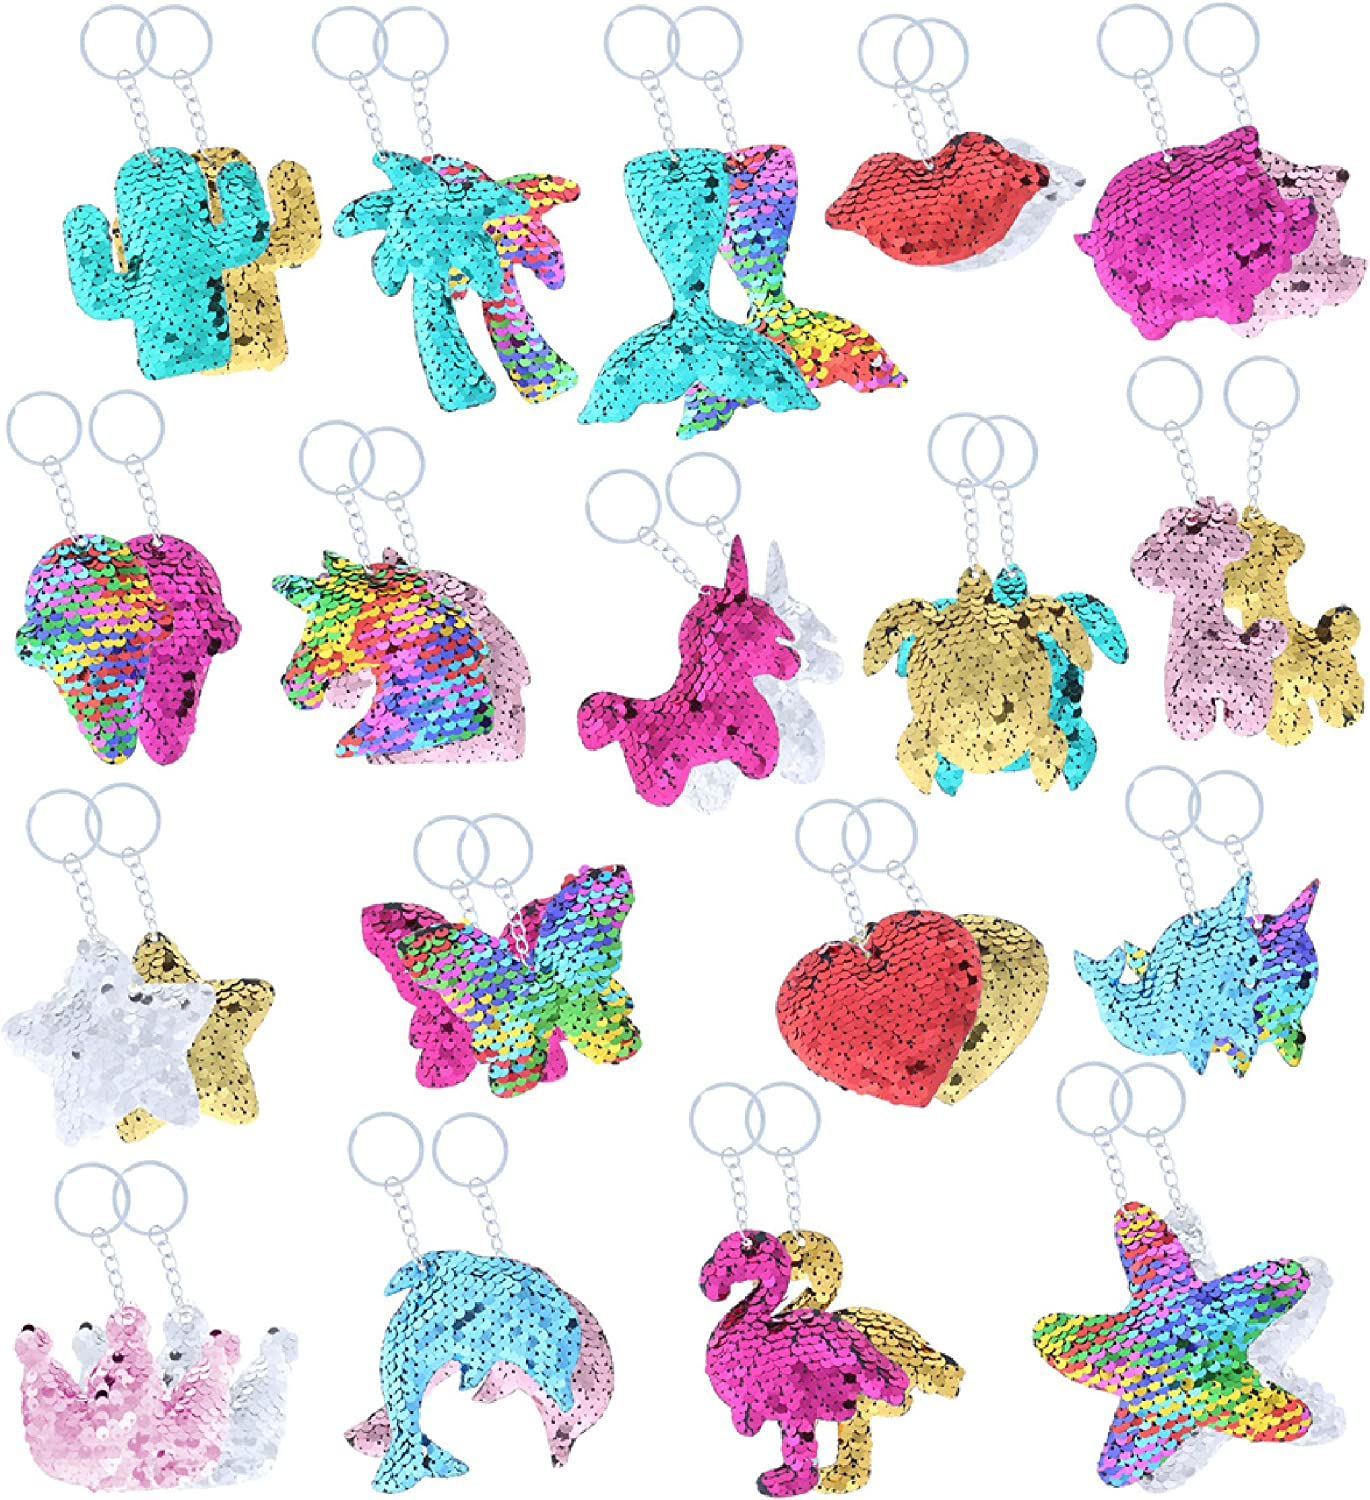 CoTa Global Flip Raleigh Ranking TOP17 Mall Sequin Keychains 36 Pack Novelty Part Bulk Toys